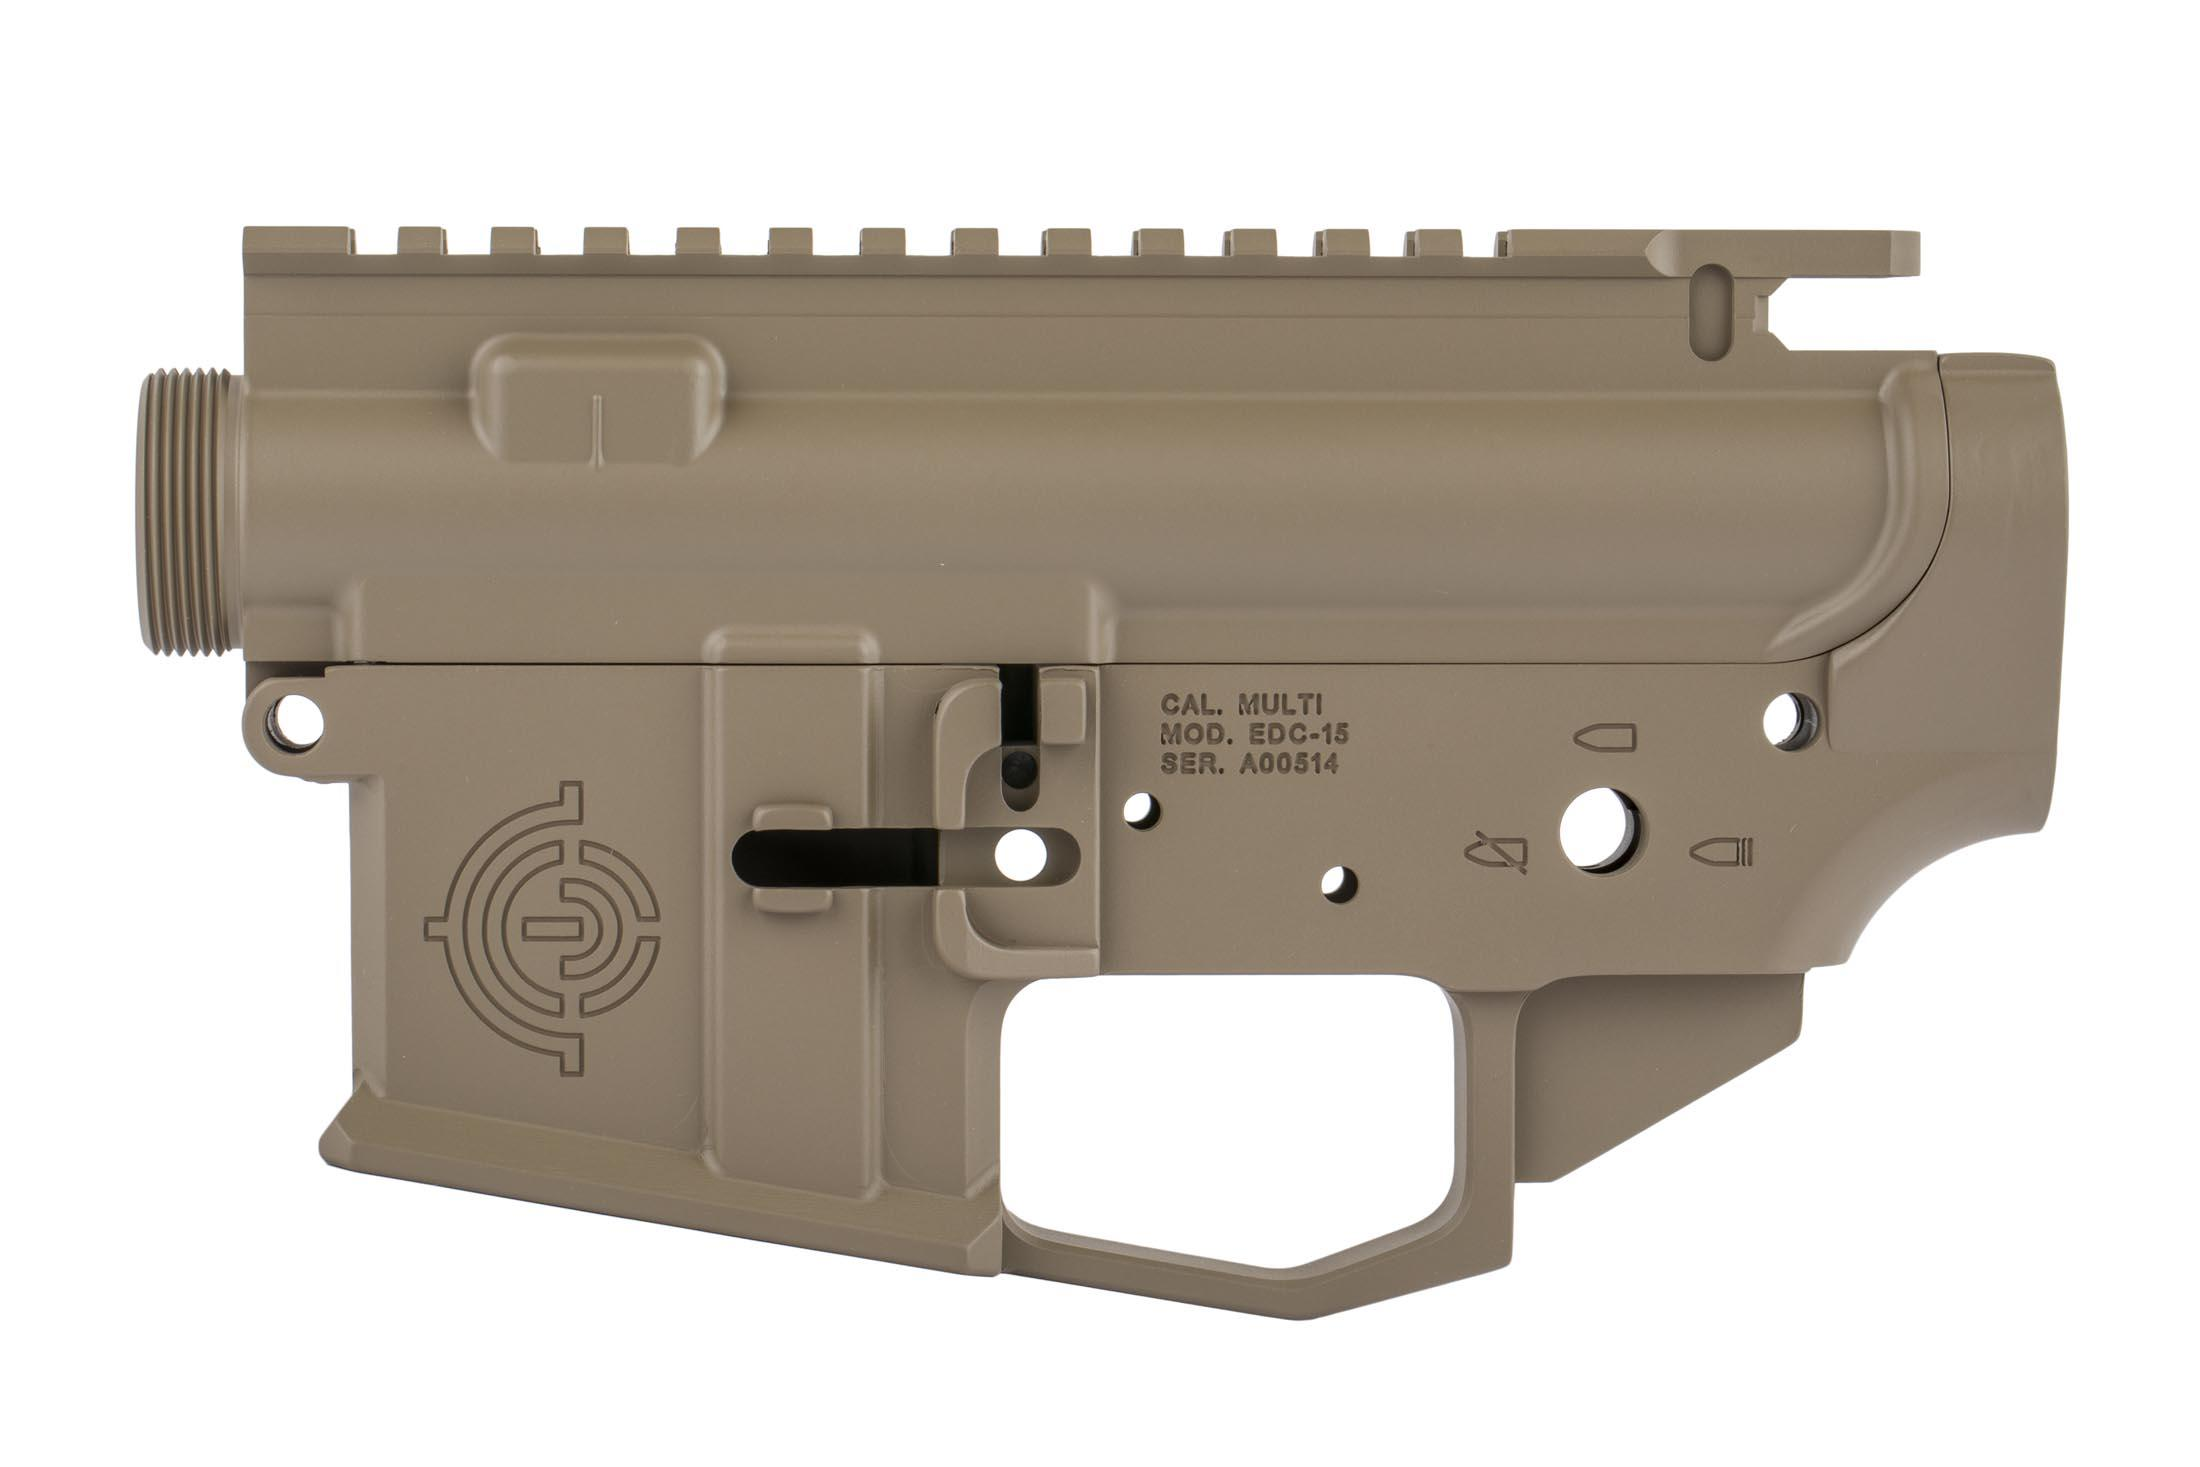 EDC cut AR-15 receiver set from EDC Tactical with FDE finish has an integral winterized trigger guard compatible with gloves.